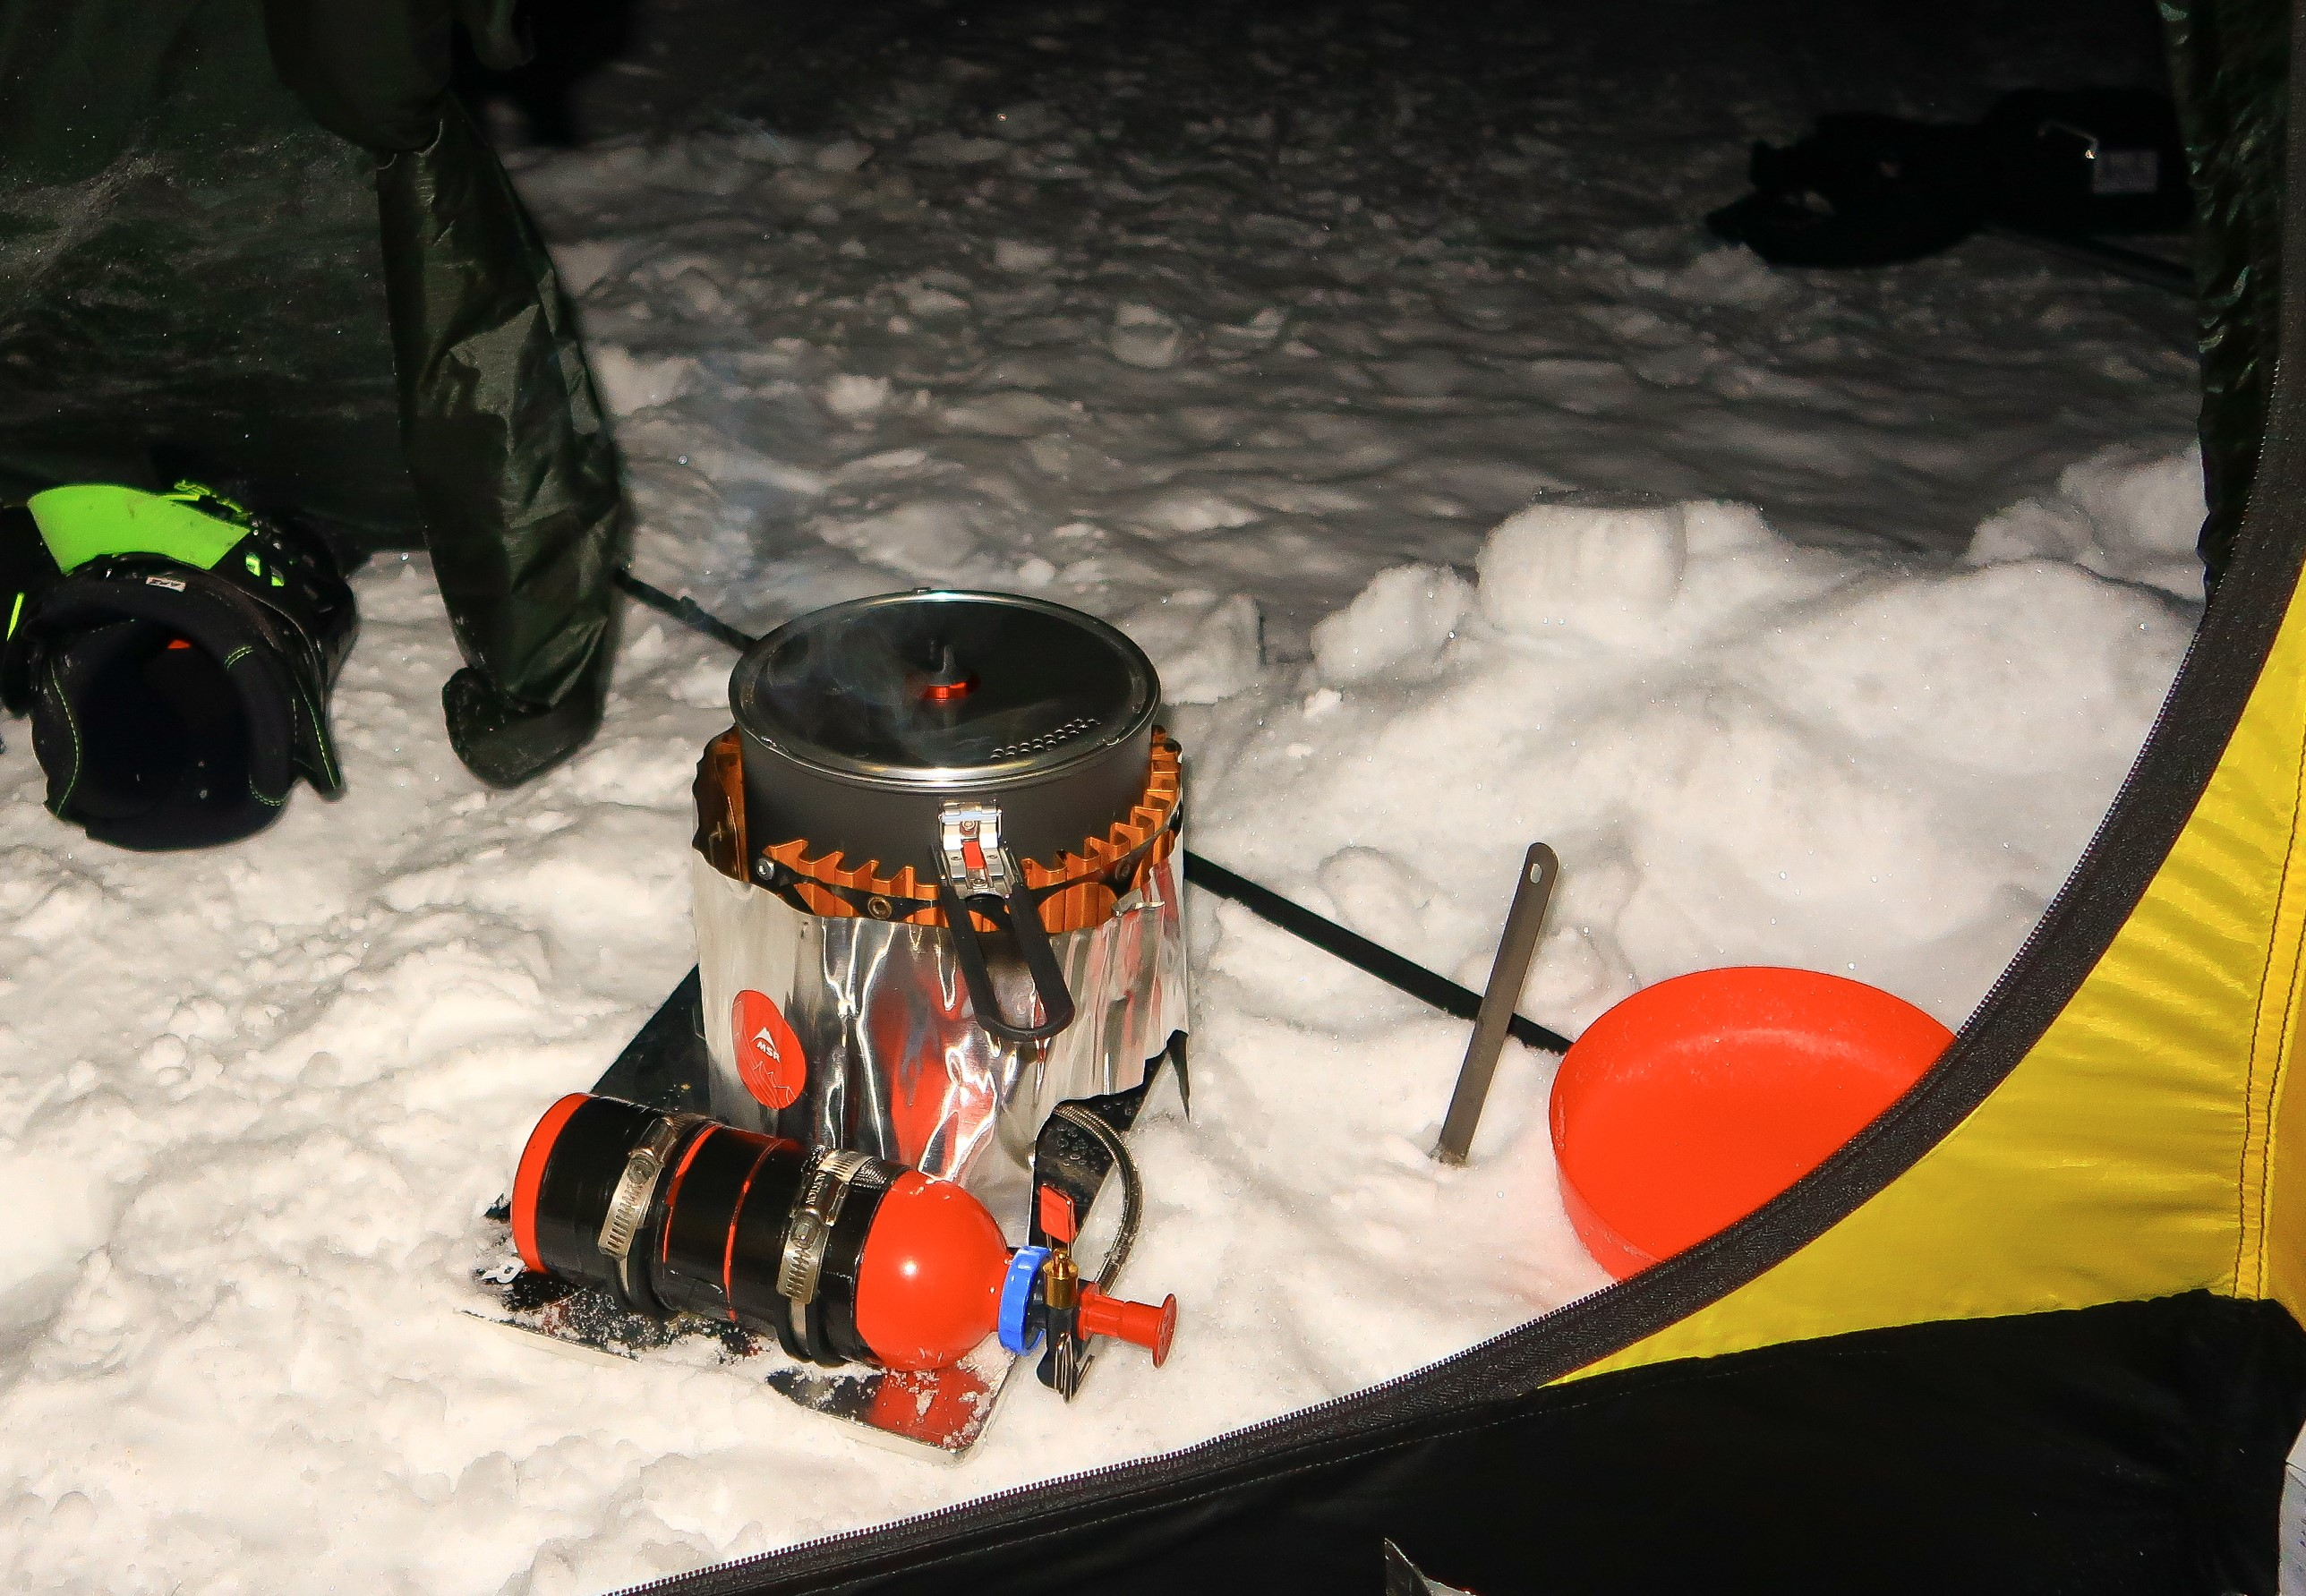 Melting snow, using the stove board